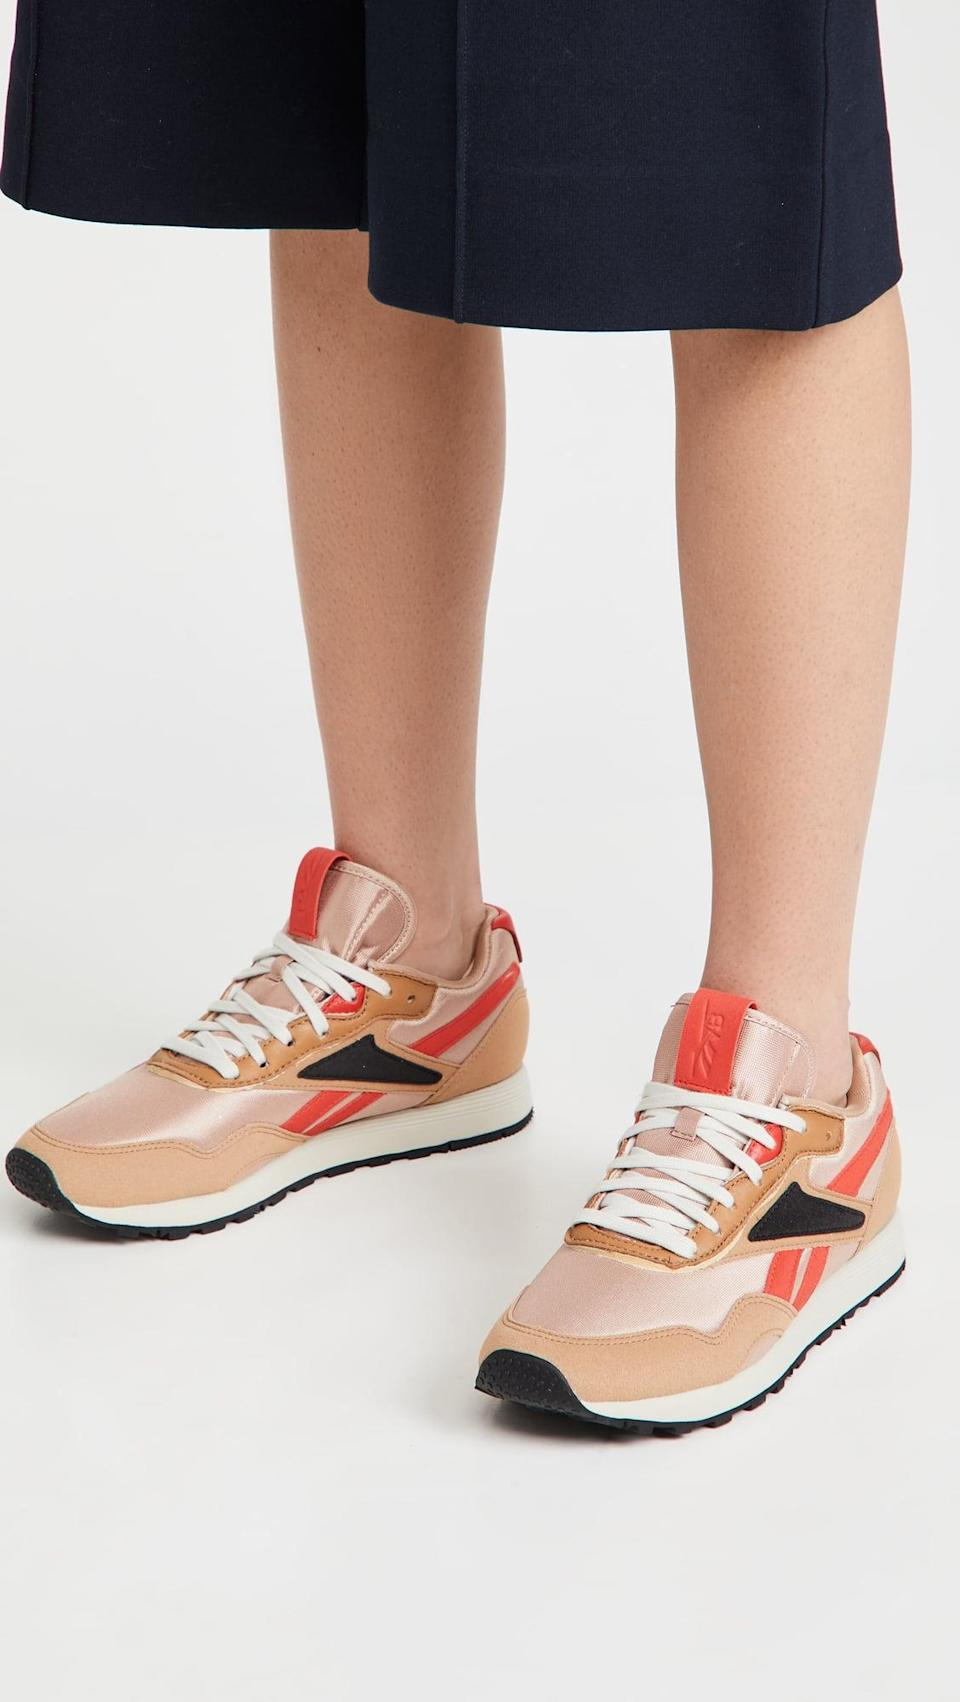 <p>We love the stripe motif and fun color scheme of these <span>Reebok x Victoria Beckham Rapide Vb Sneakers</span> ($150). Designed for everyday wear, the feature a comfortable rubber sole, a lightweight midsole and lace-up closure.</p>